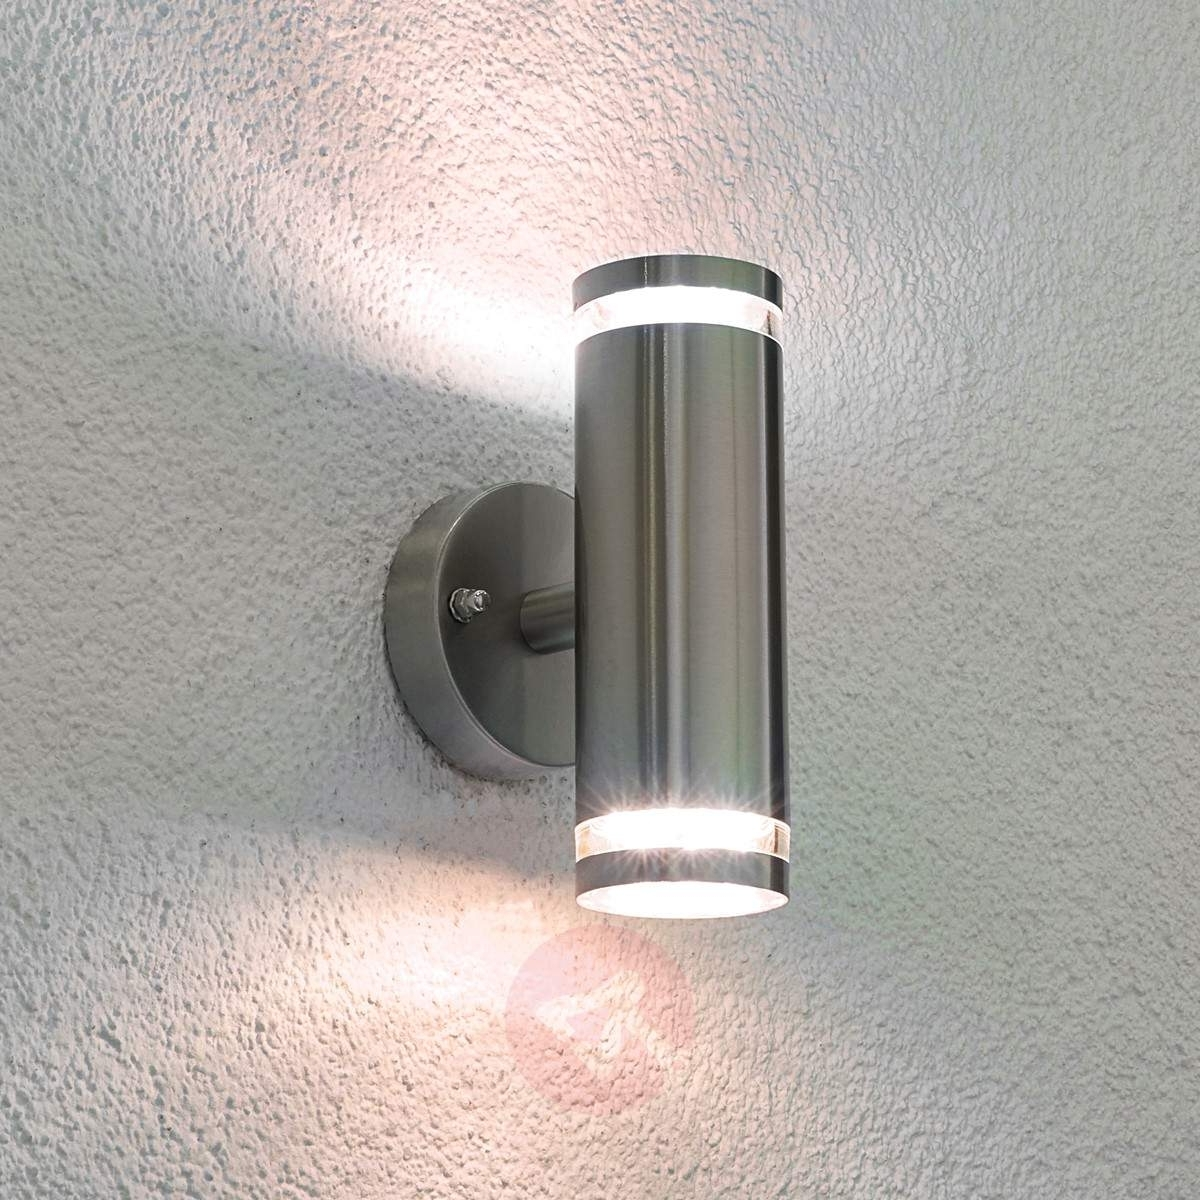 Ip65 Outdoor Wall Lights Regarding Most Recently Released Led Wall Lights Outdoor – Outdoor Designs (View 10 of 20)